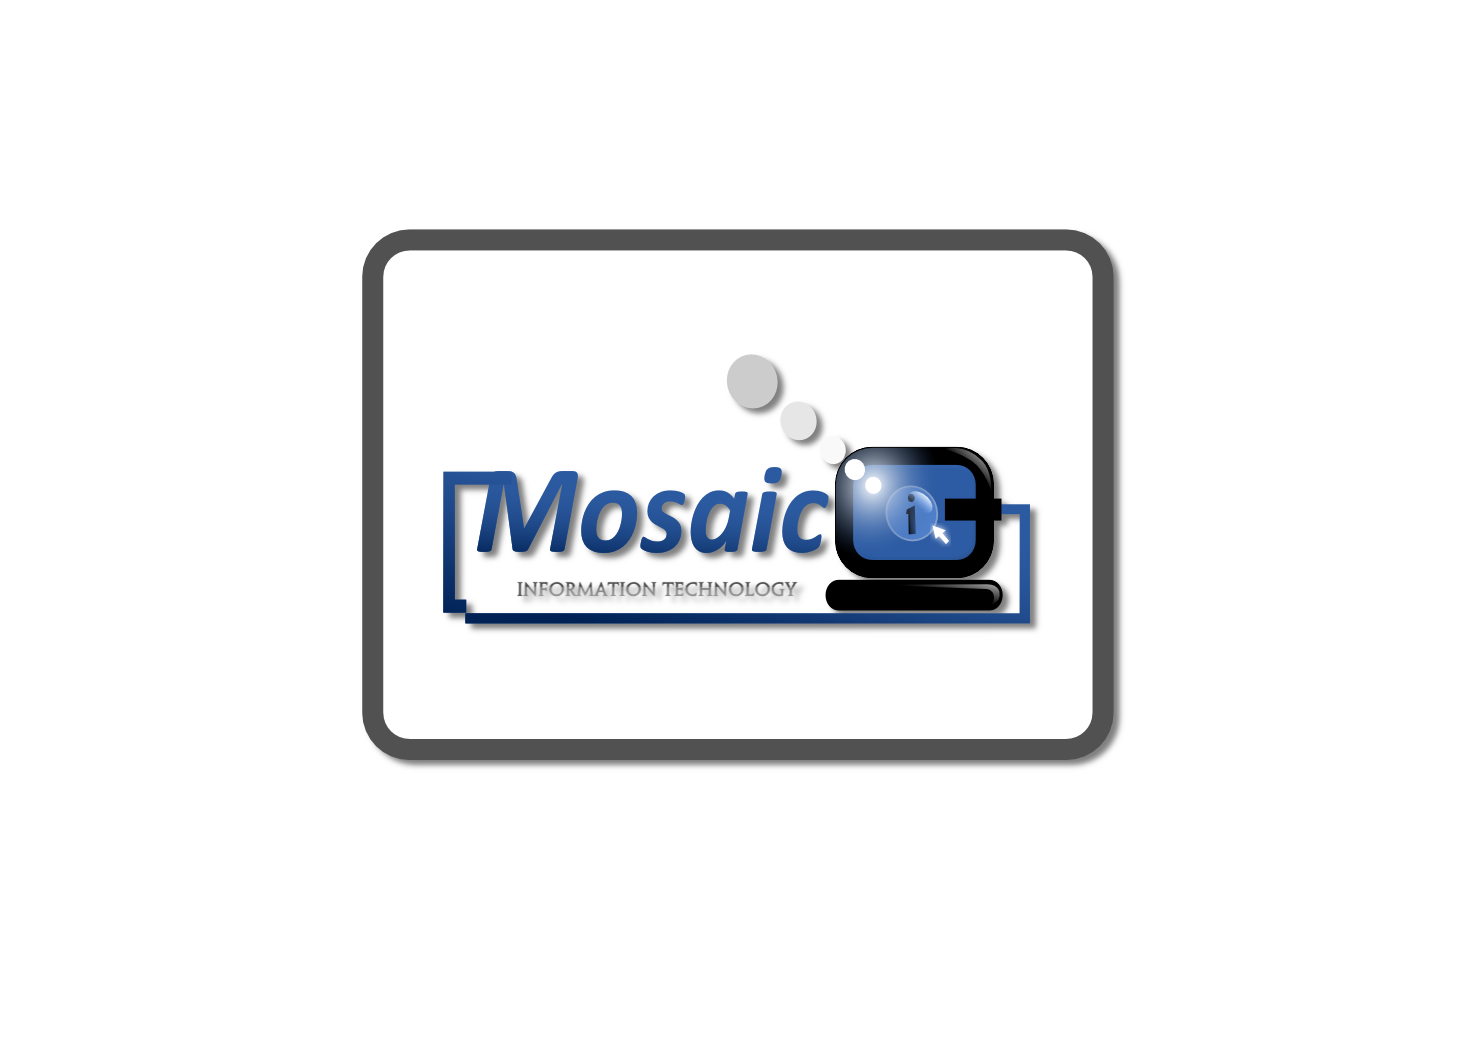 Logo Design by whoosef - Entry No. 79 in the Logo Design Contest Mosaic Information Technology Logo Design.